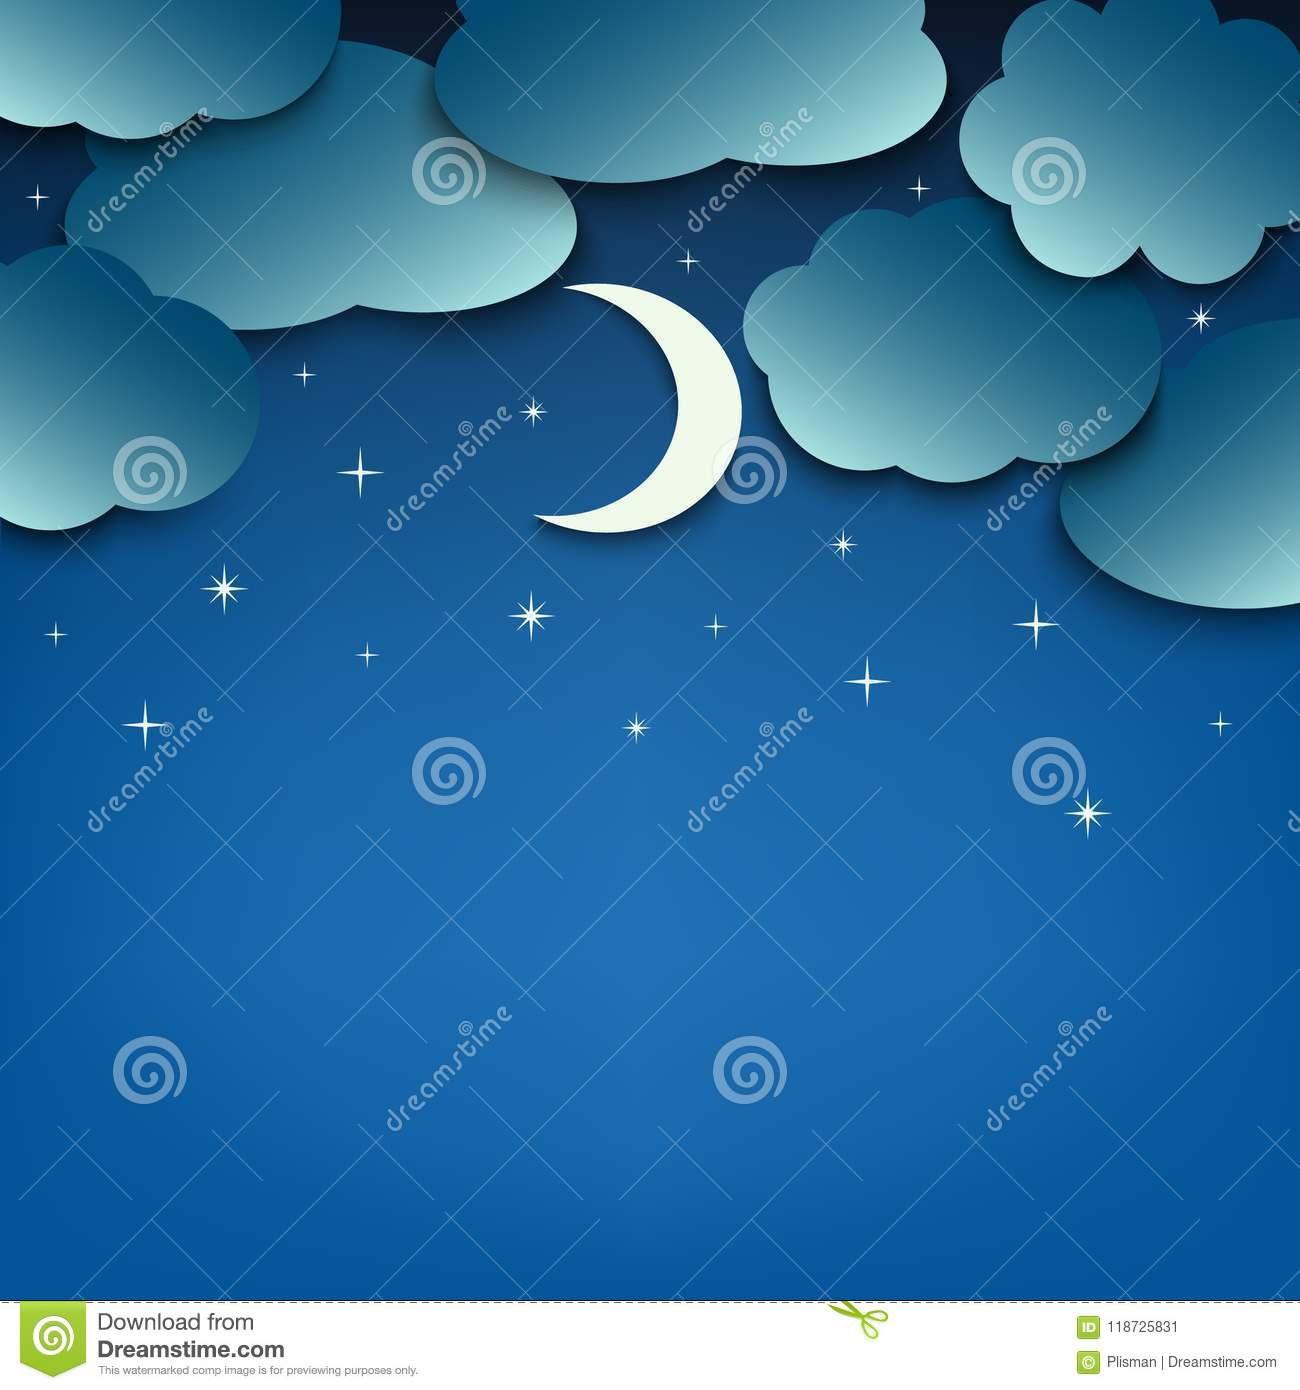 night sky with clouds and moon template stock vector illustration